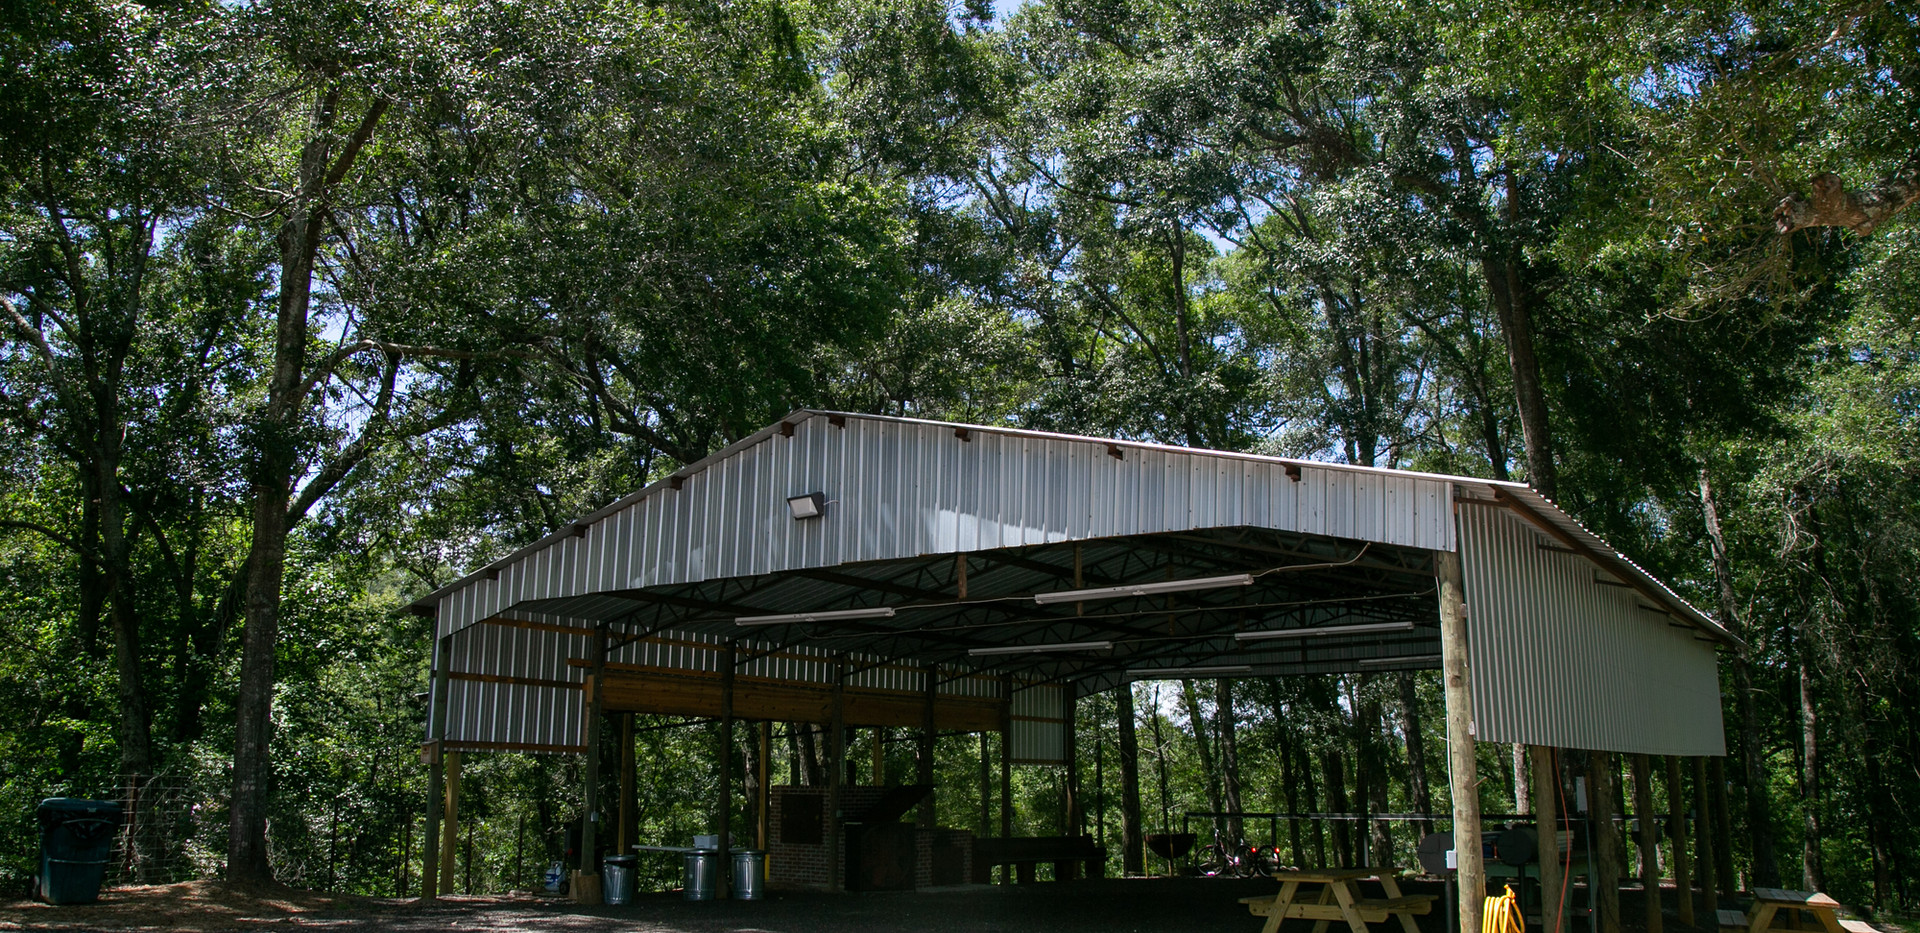 The Oaks Campground Pavilion